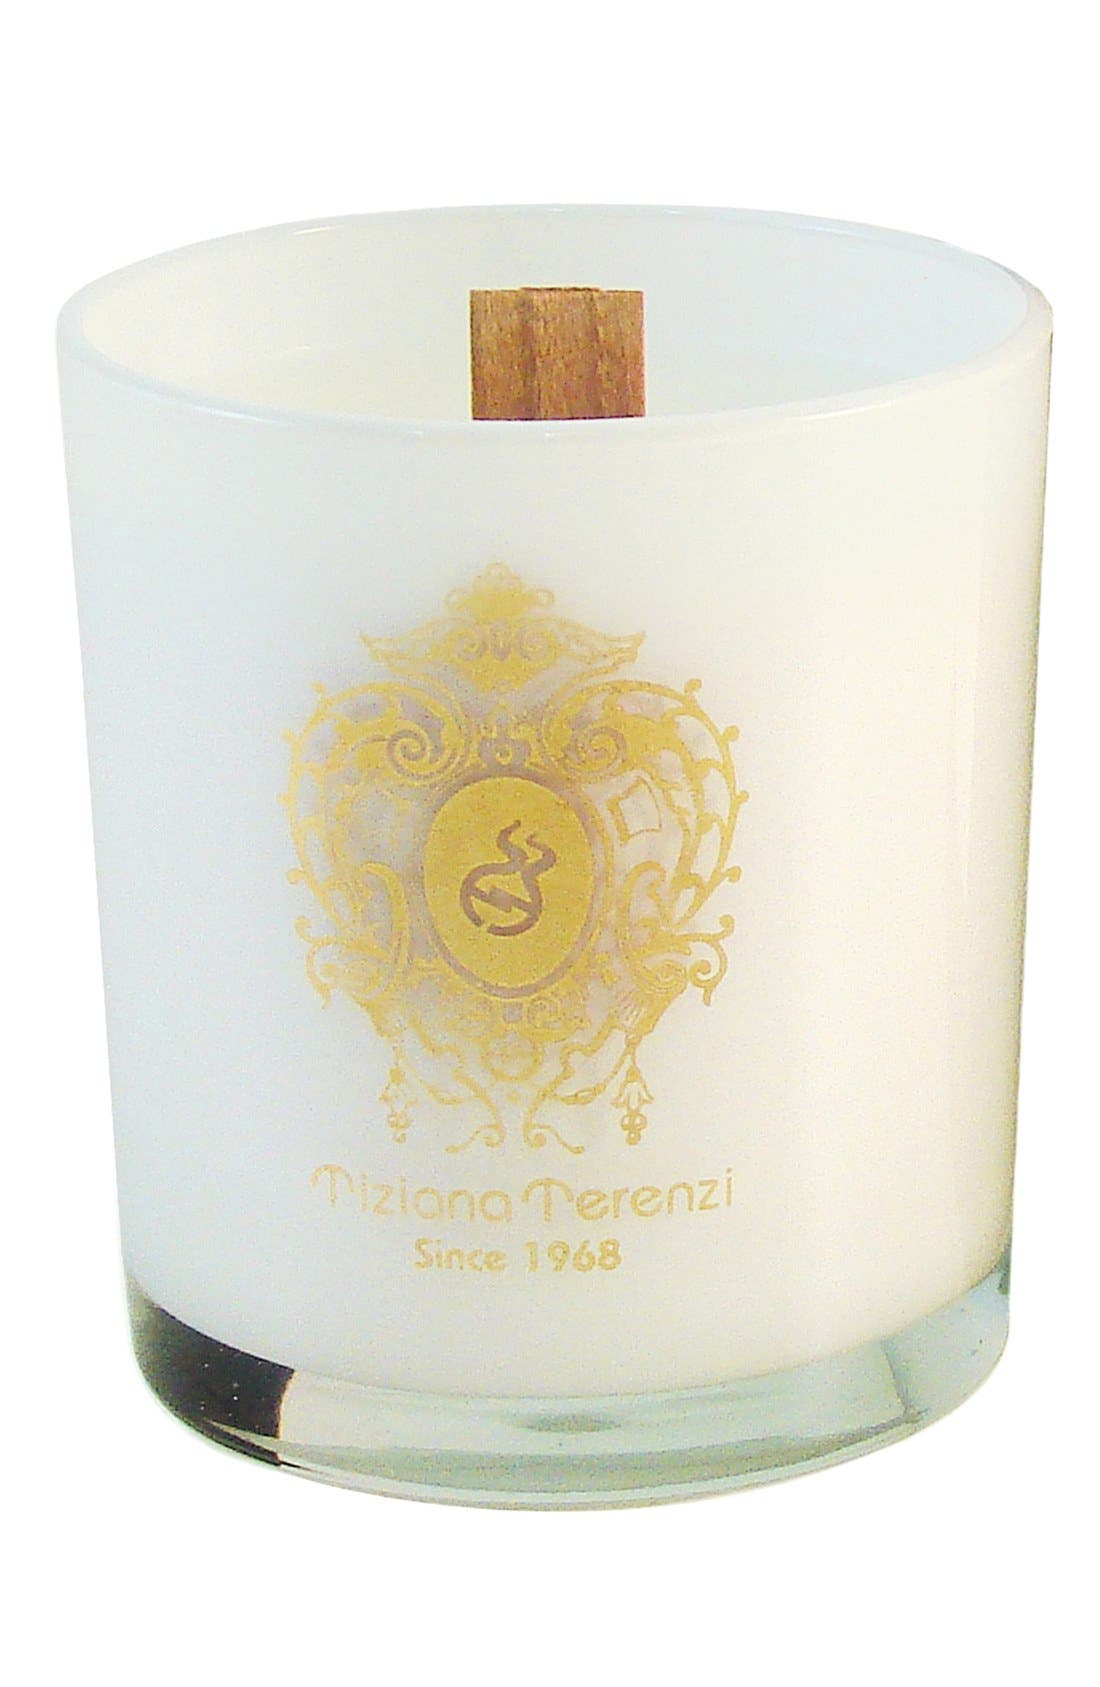 'Arethusa' Single Wick Gioconda Candle,                             Main thumbnail 1, color,